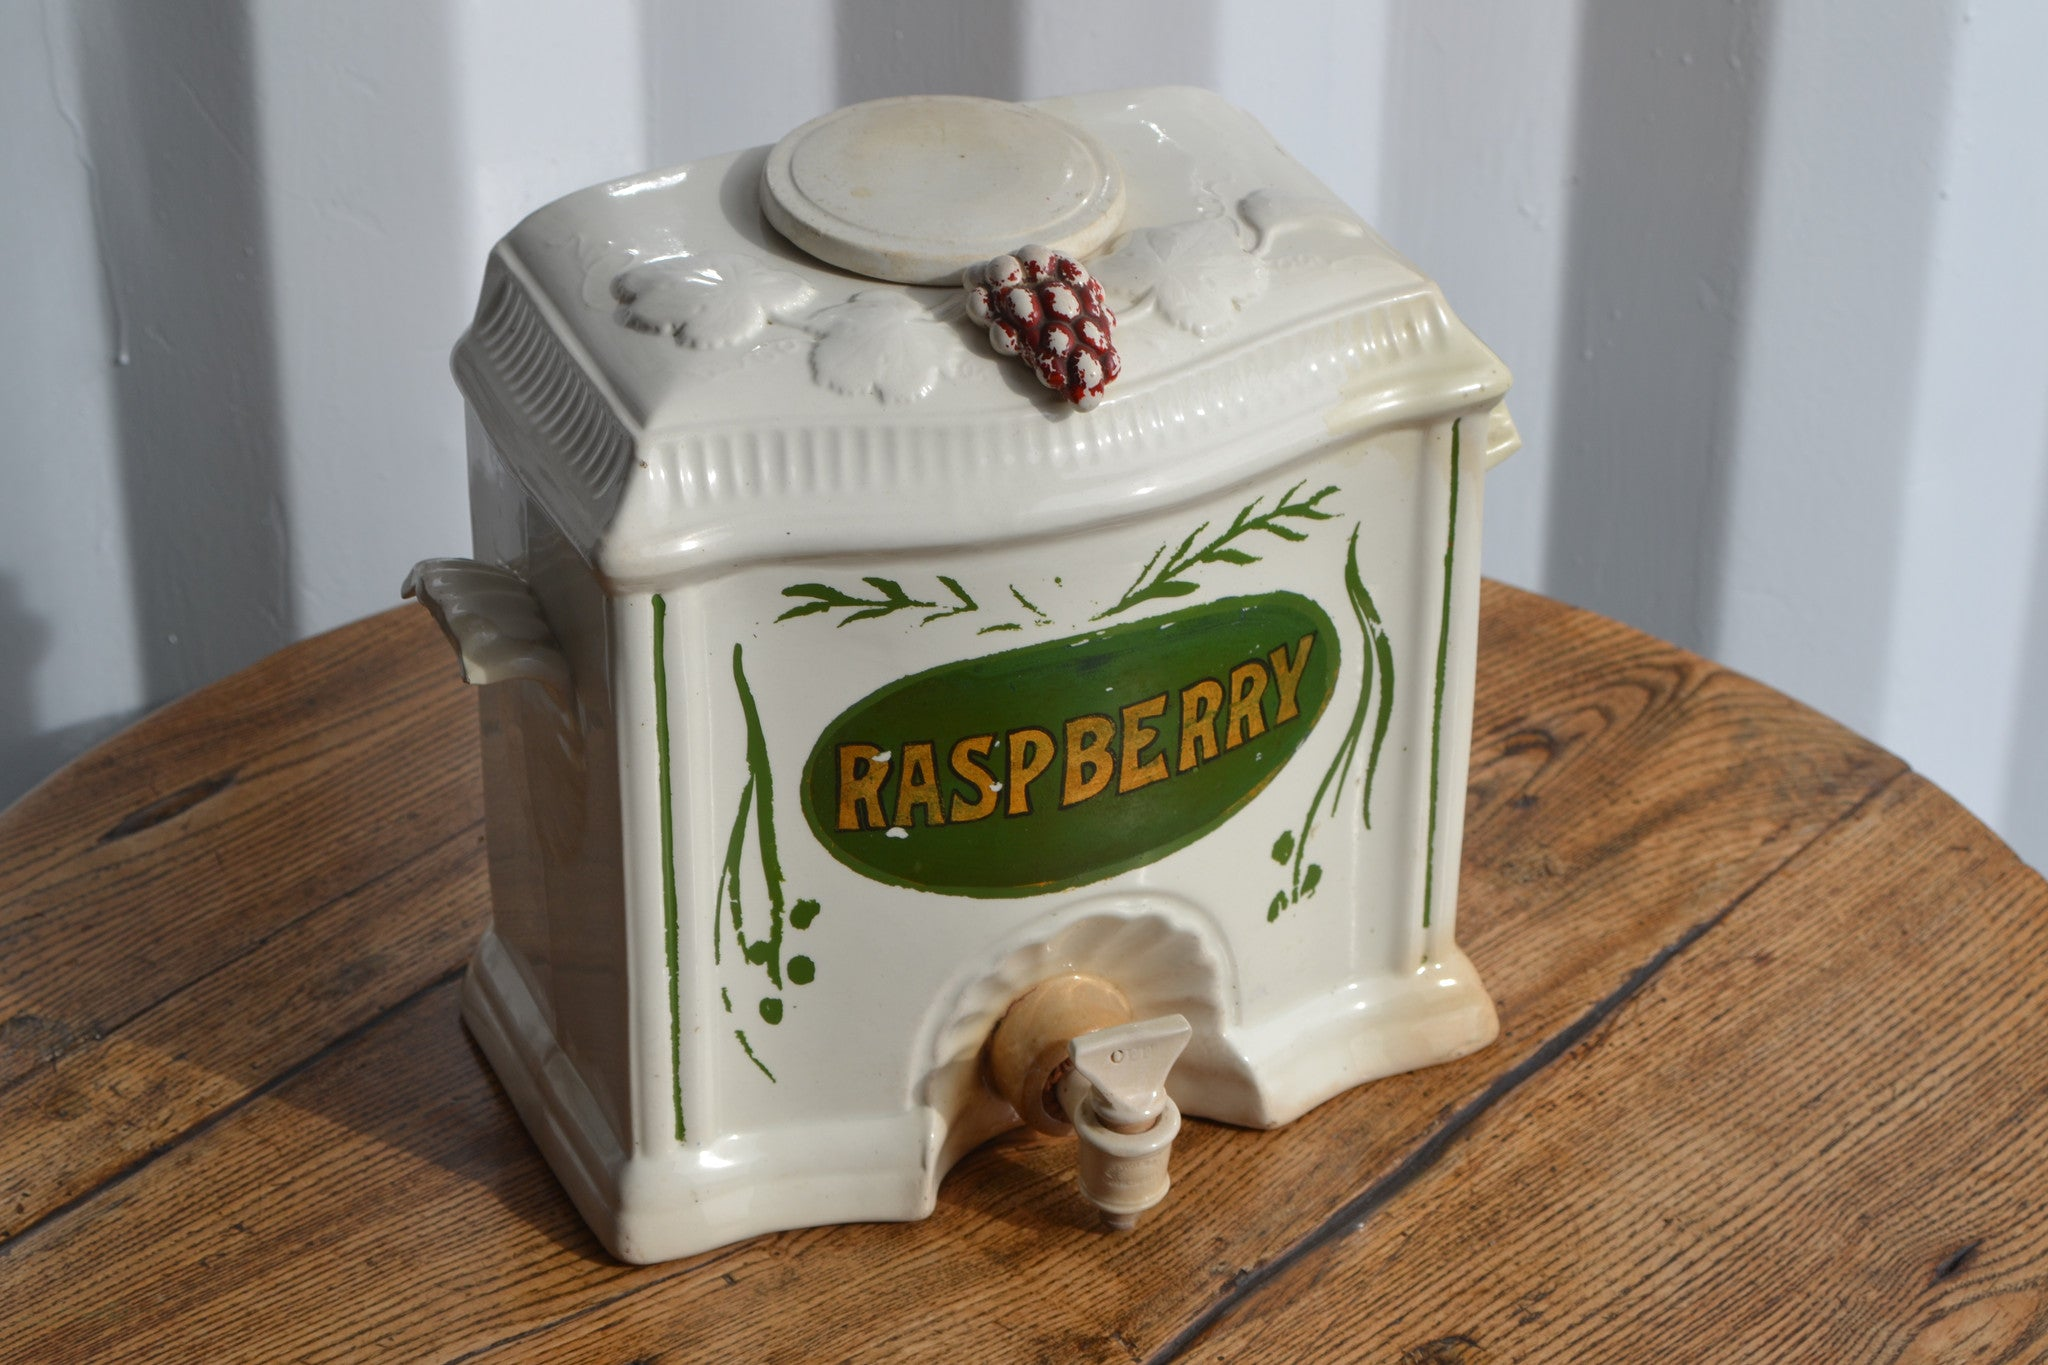 Victorian Wedgwood Raspberry cordial dispenser